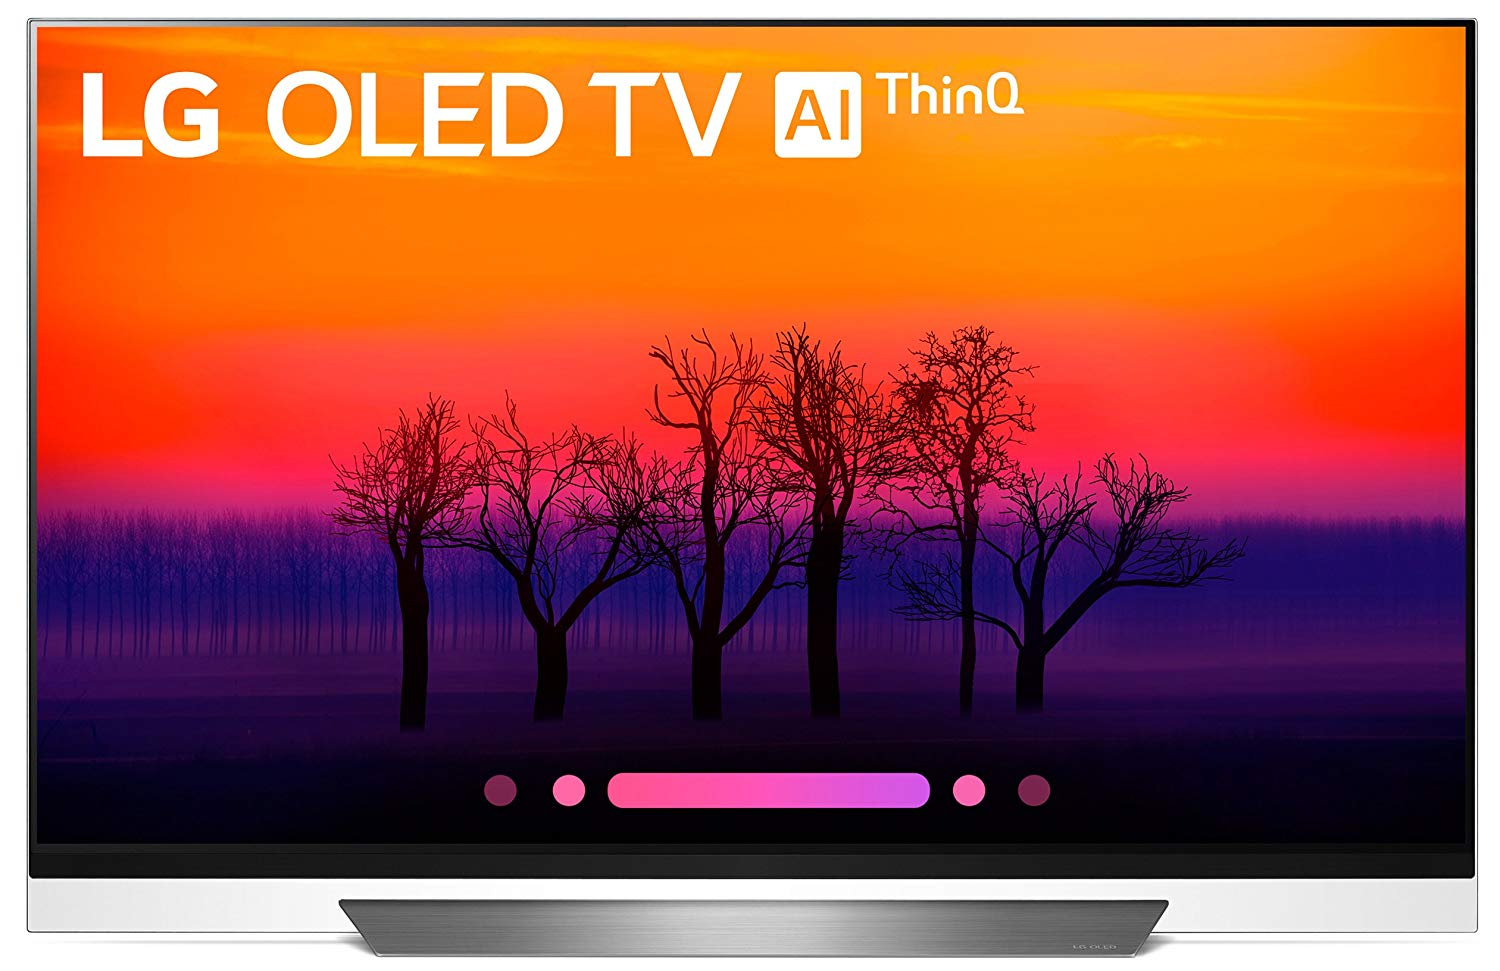 LG OLED TV Buying Guide 2019 - Discounted 2018 Models versus the